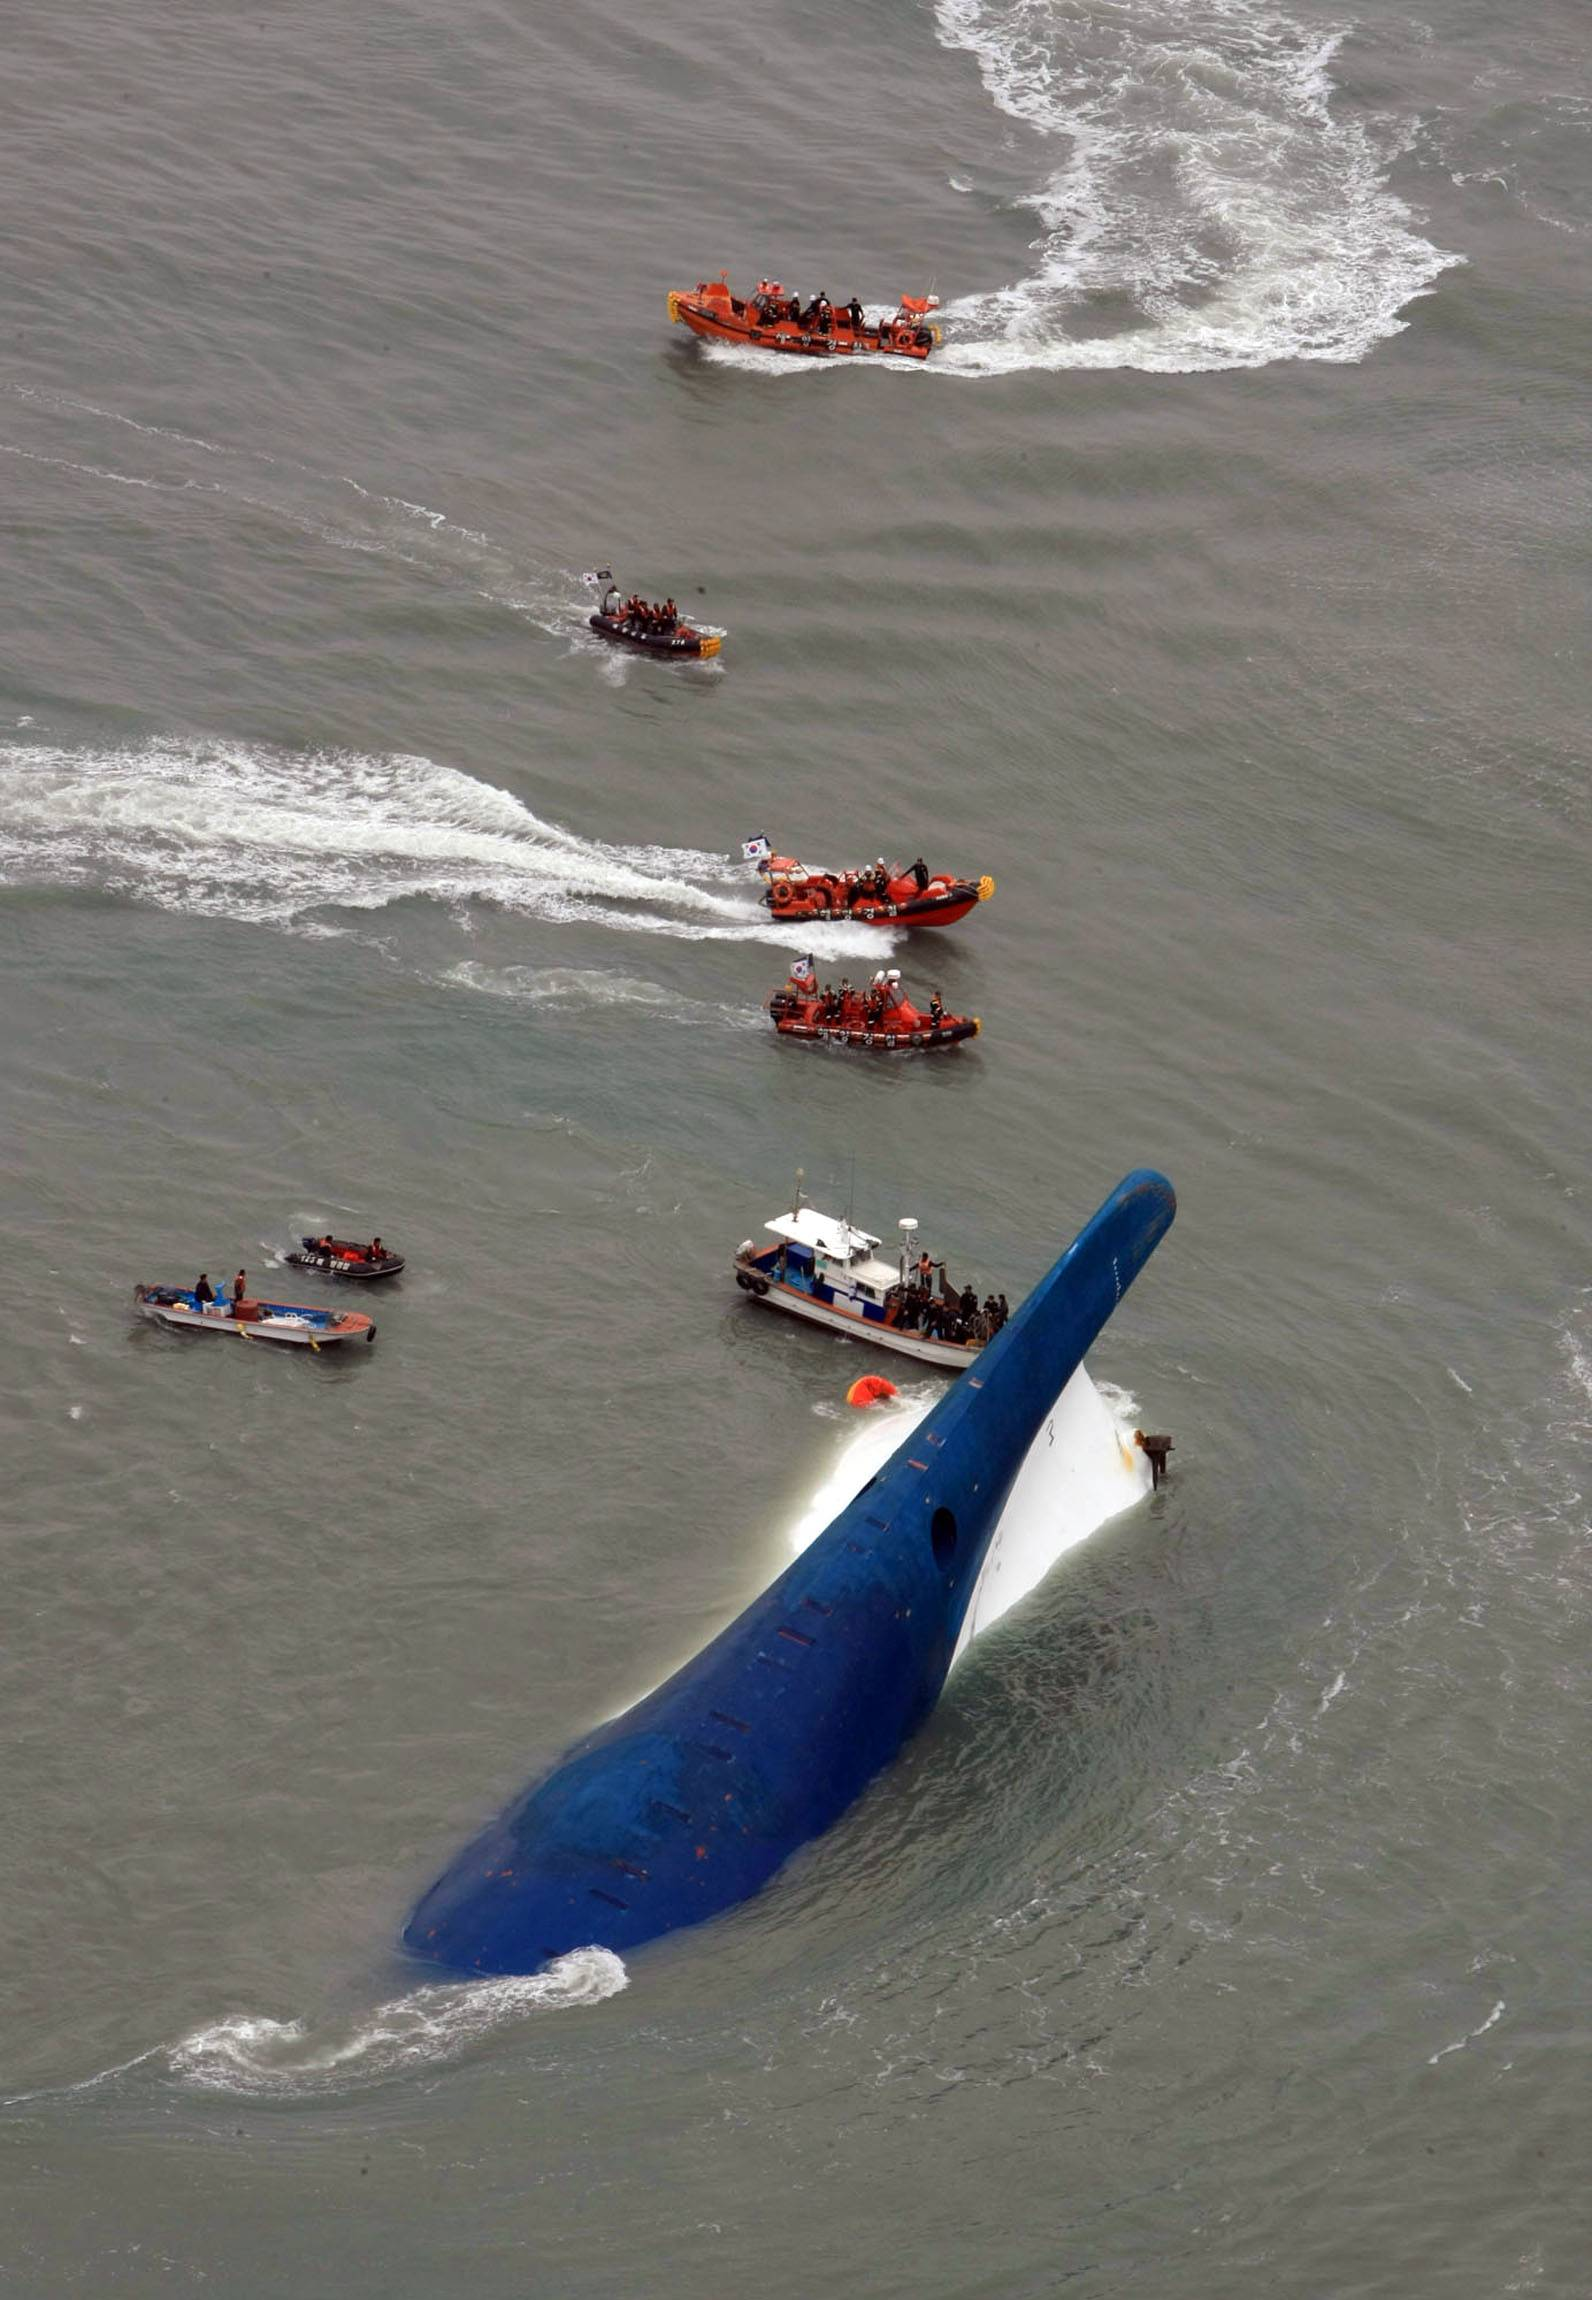 In this photo released by Jeollanamdo via Yonhap News Agency, South Korean rescue team boats and fishing boats try to rescue passengers of a ferry sinking off South Korea's southern coast, in the water off the southern coast near Jindo, south of Seoul, Wednesday, April 16, 2014. Nearly 300 people were still missing Wednesday several hours after a ferry carrying 477, most of them high school students, sank in cold waters off South Korea's southern coast.